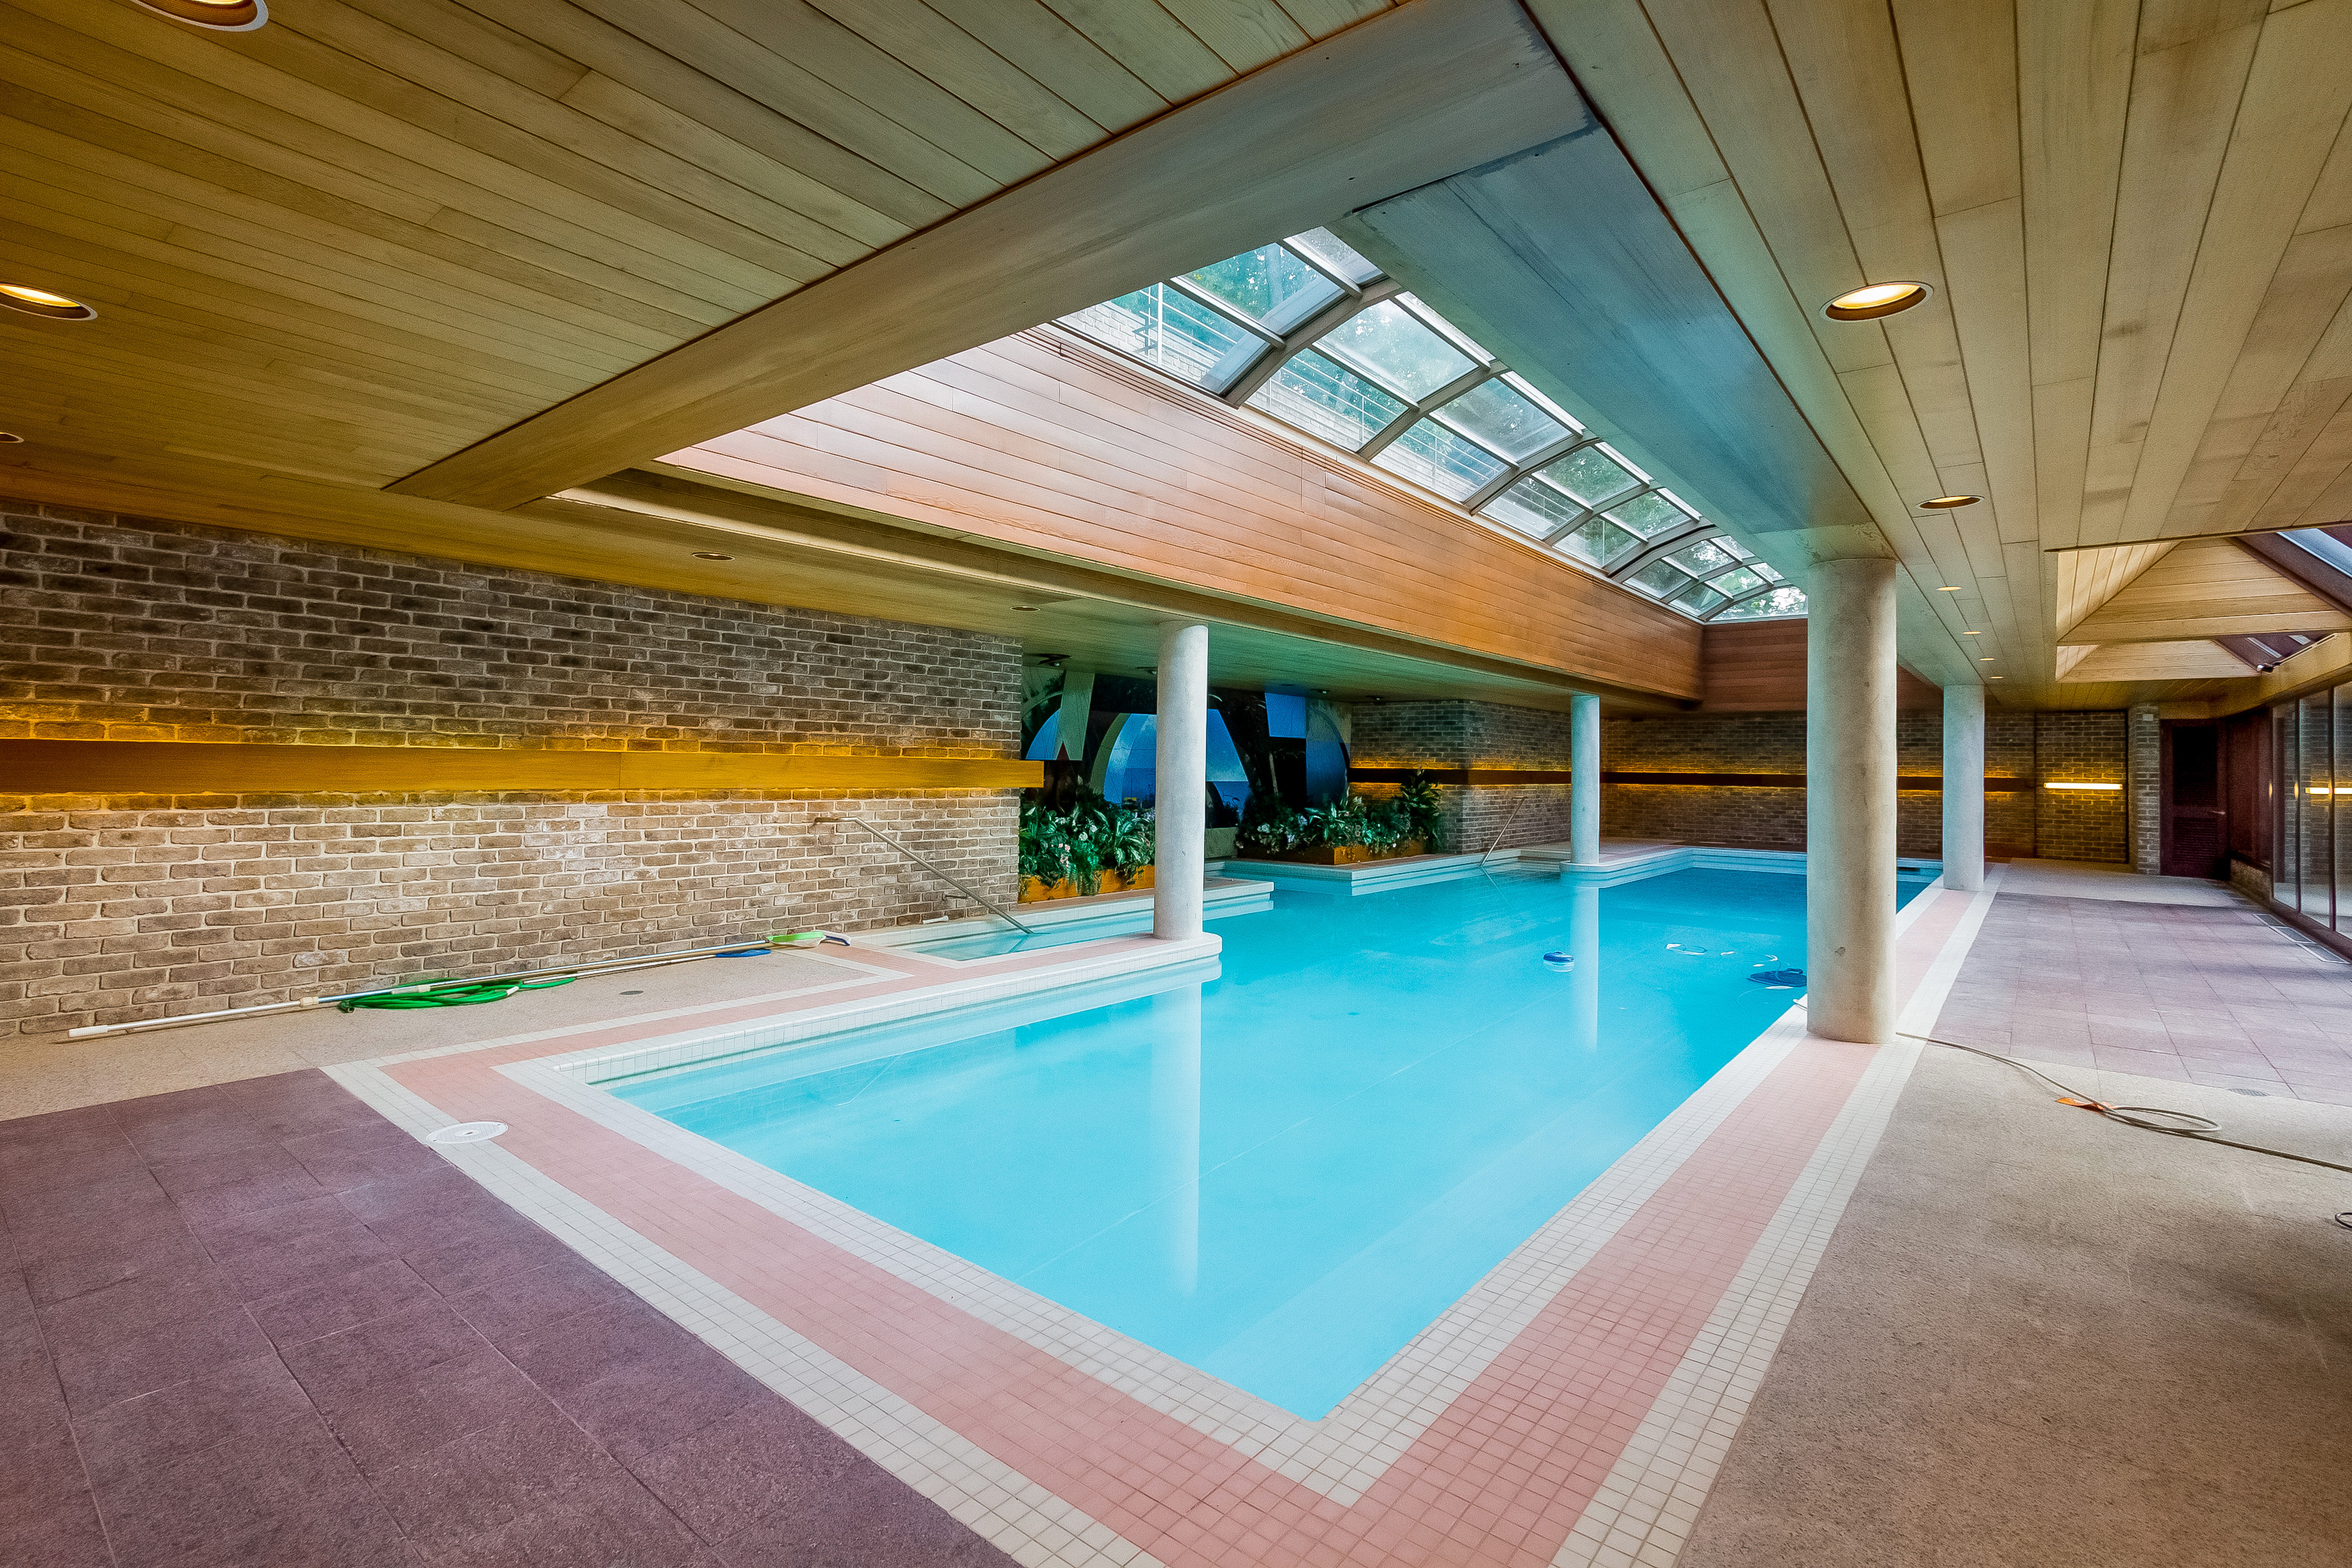 057-Indoor_Pool-4840844-large